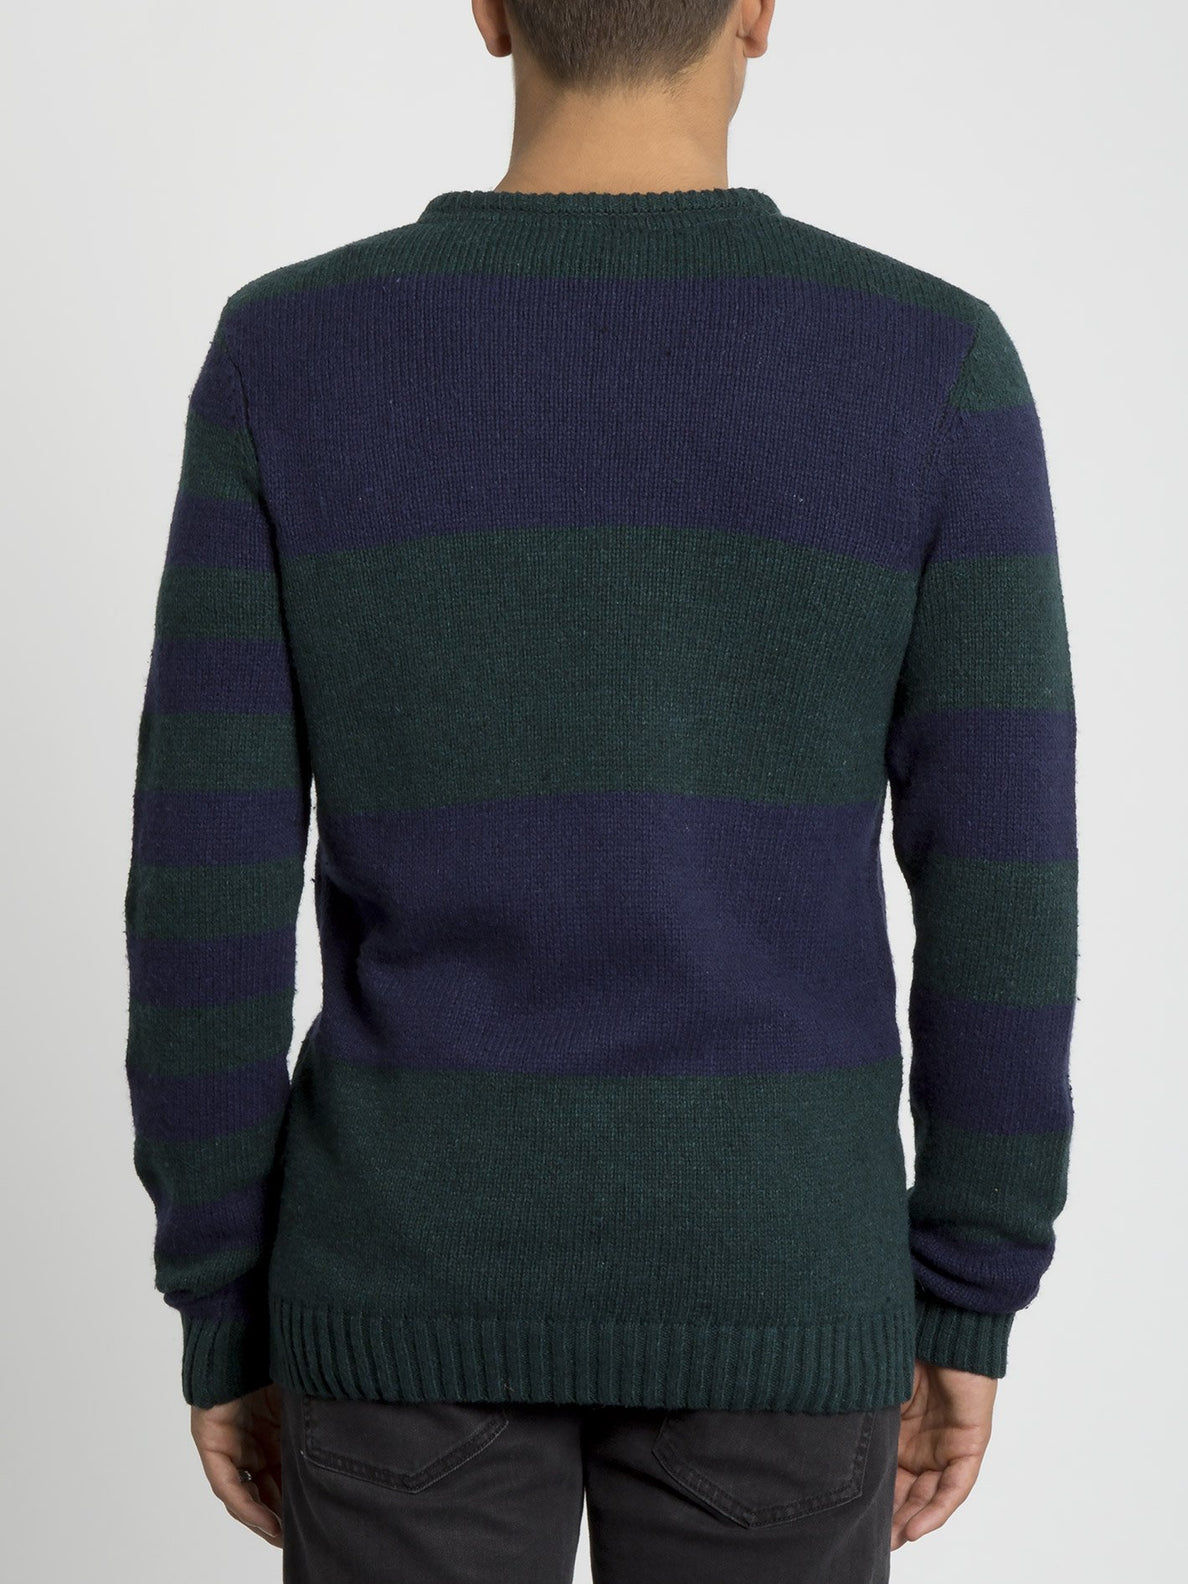 Edmonder Striped Sweater - Navy (A0731904_NVY) [B]